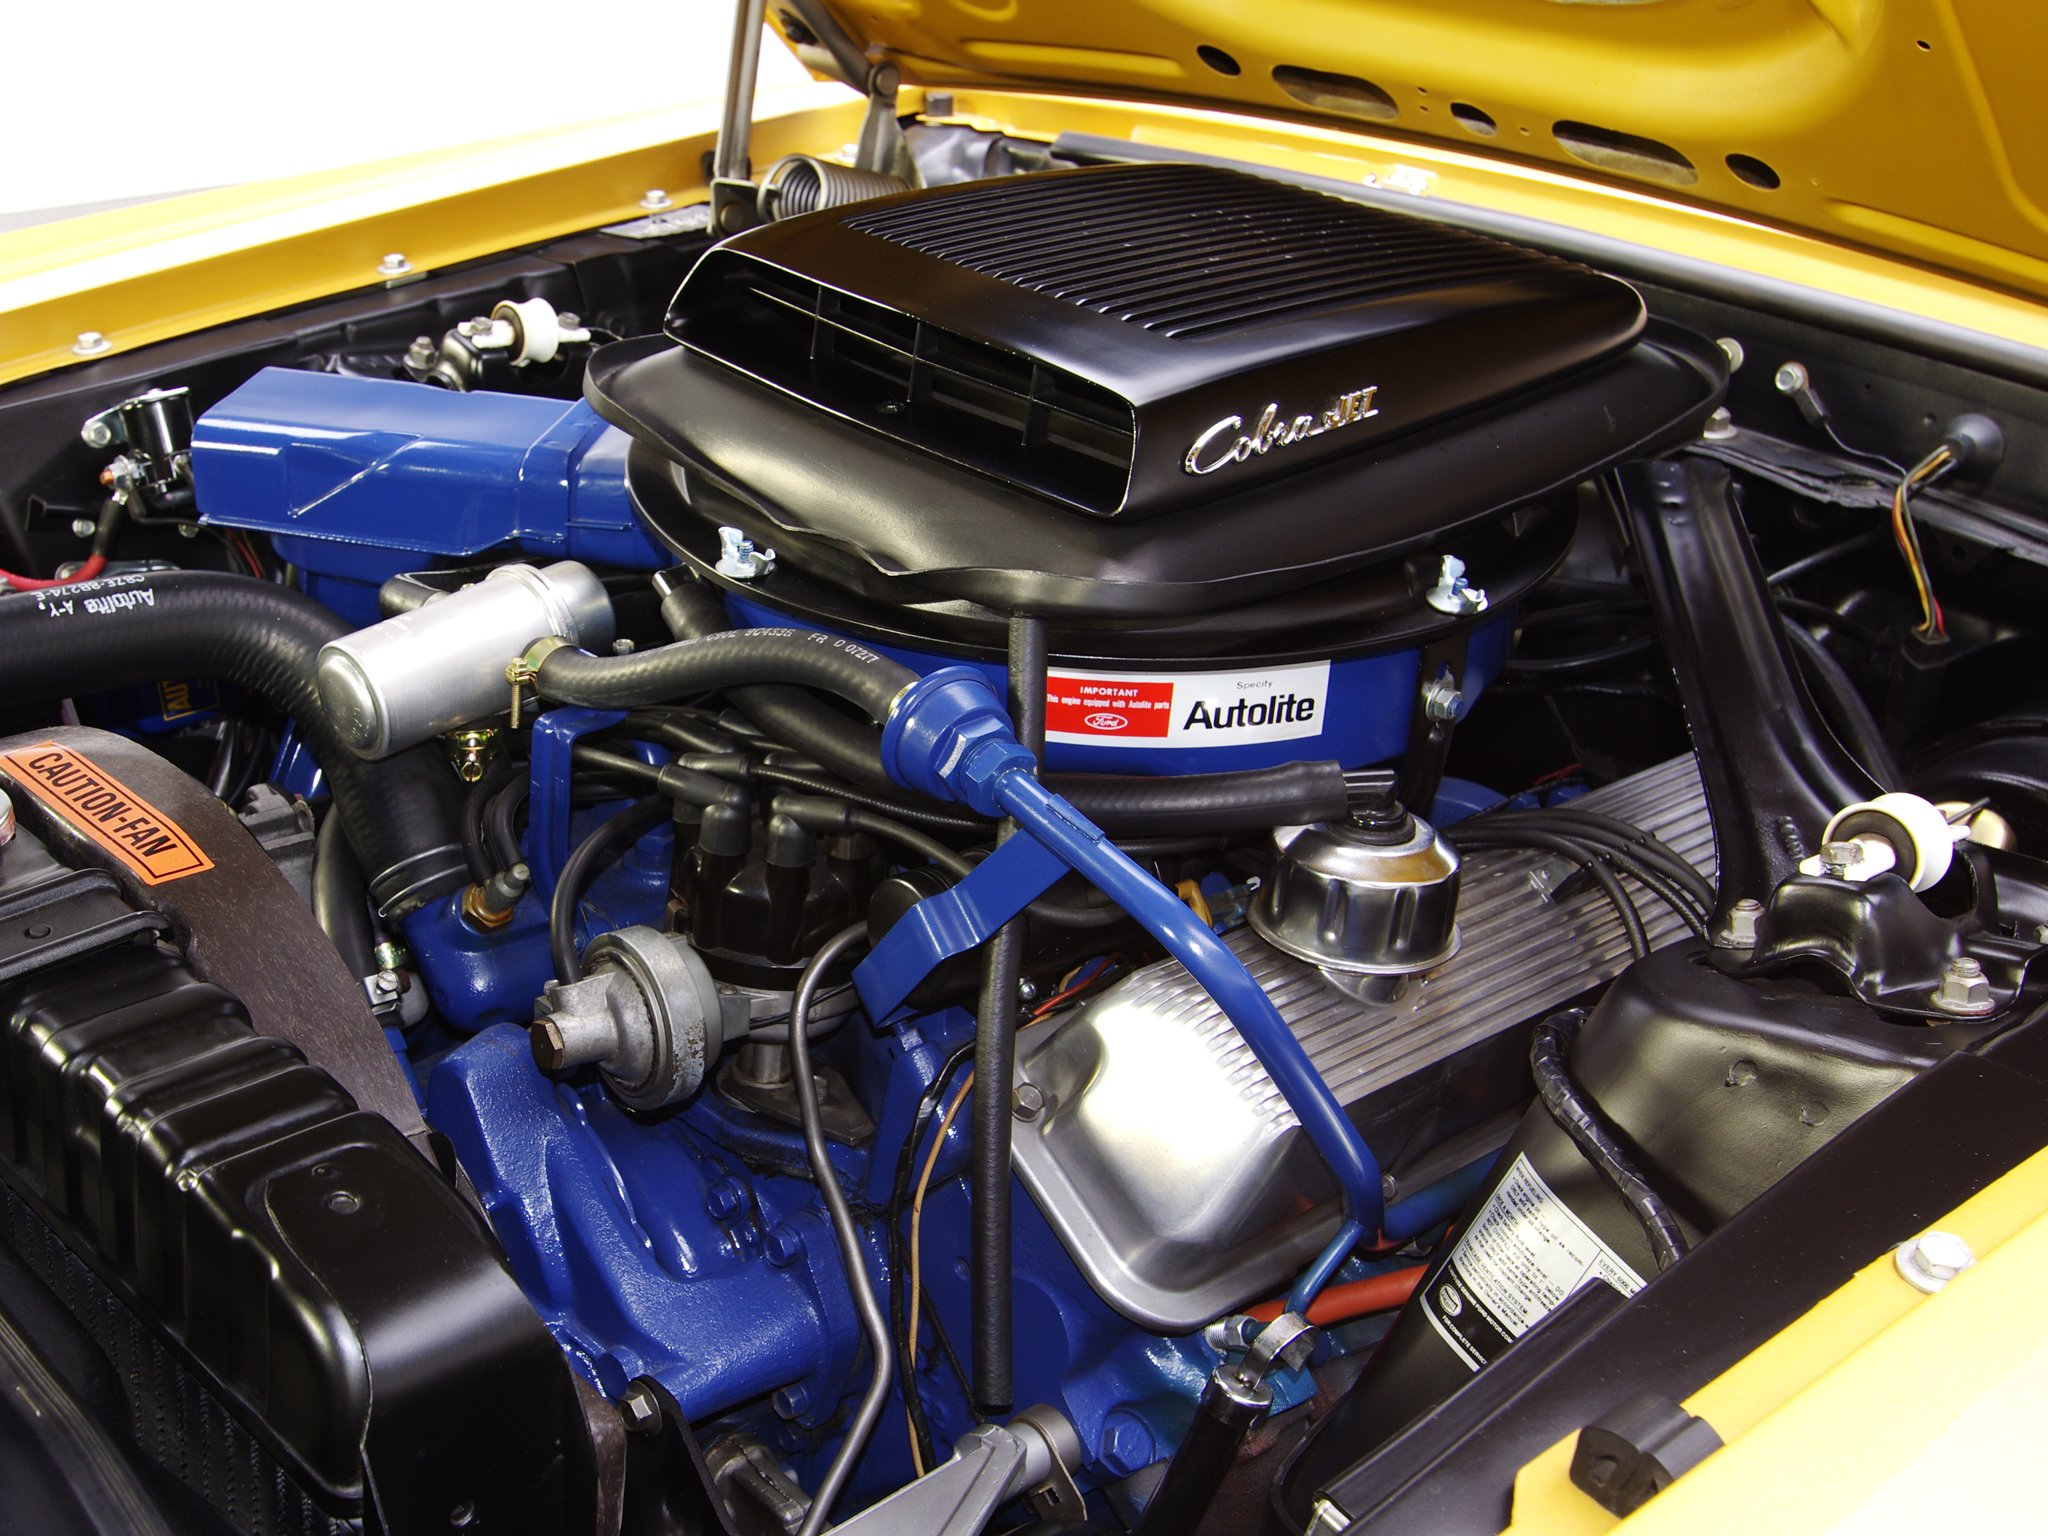 1970 Ford Mustang Mach1 428 Super Cobra Jet muscle classic engine